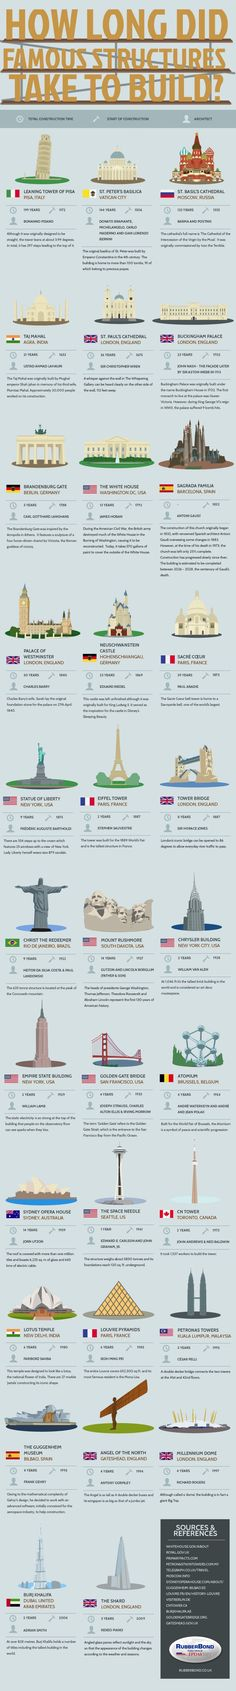 How Long Did Famous Structures Take to Build? INTRIGUING ARCHITECTURE long pin full of information about history of famous buildings across the centuries. Famous Structures, Famous Buildings, World History, Art History, Build A Better World, Civil Engineering, Engineering Science, Interesting History, History Facts